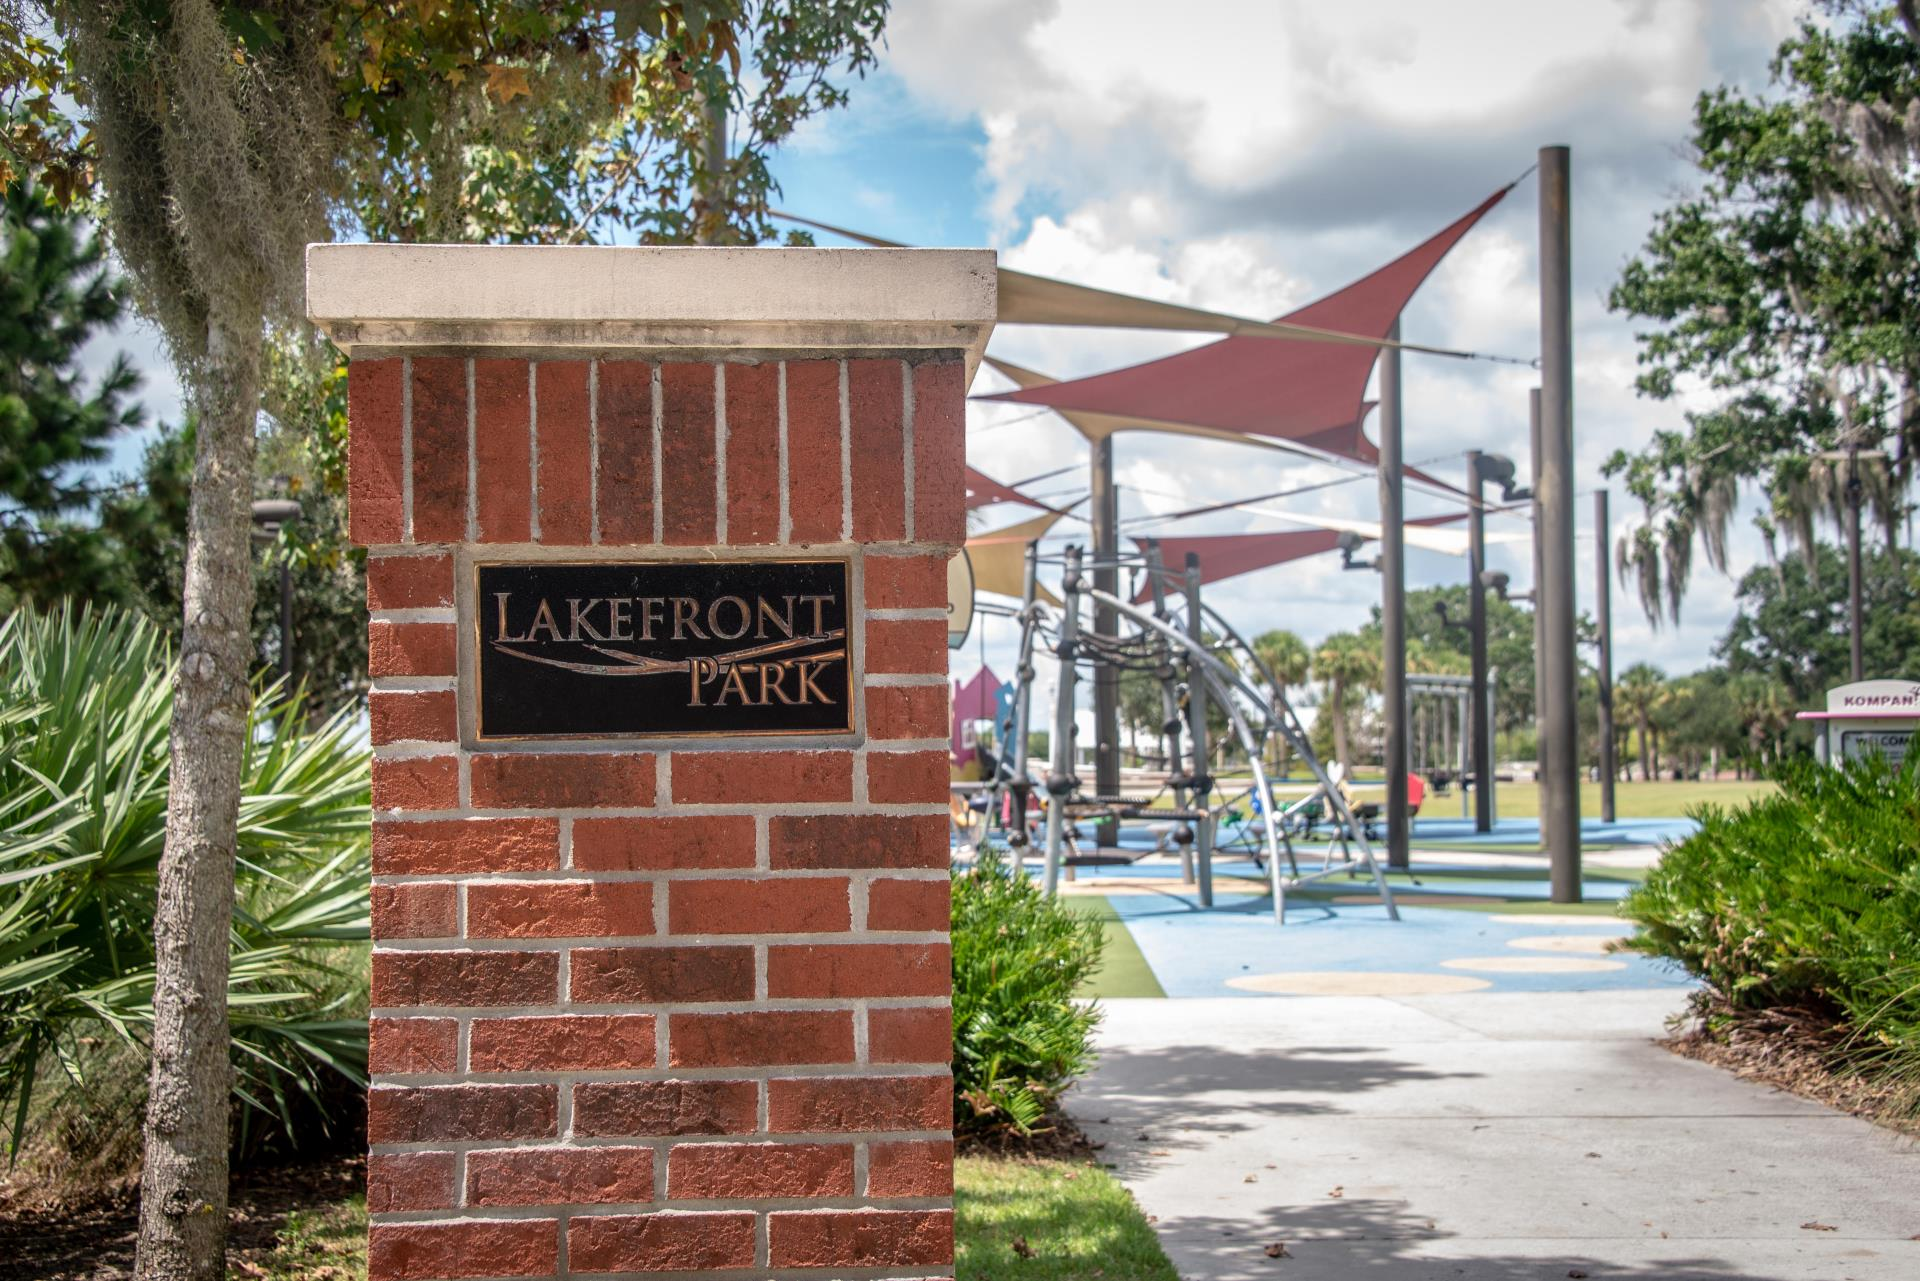 Lakefront Park Entrance Playground Kissimmee Lakefront Park